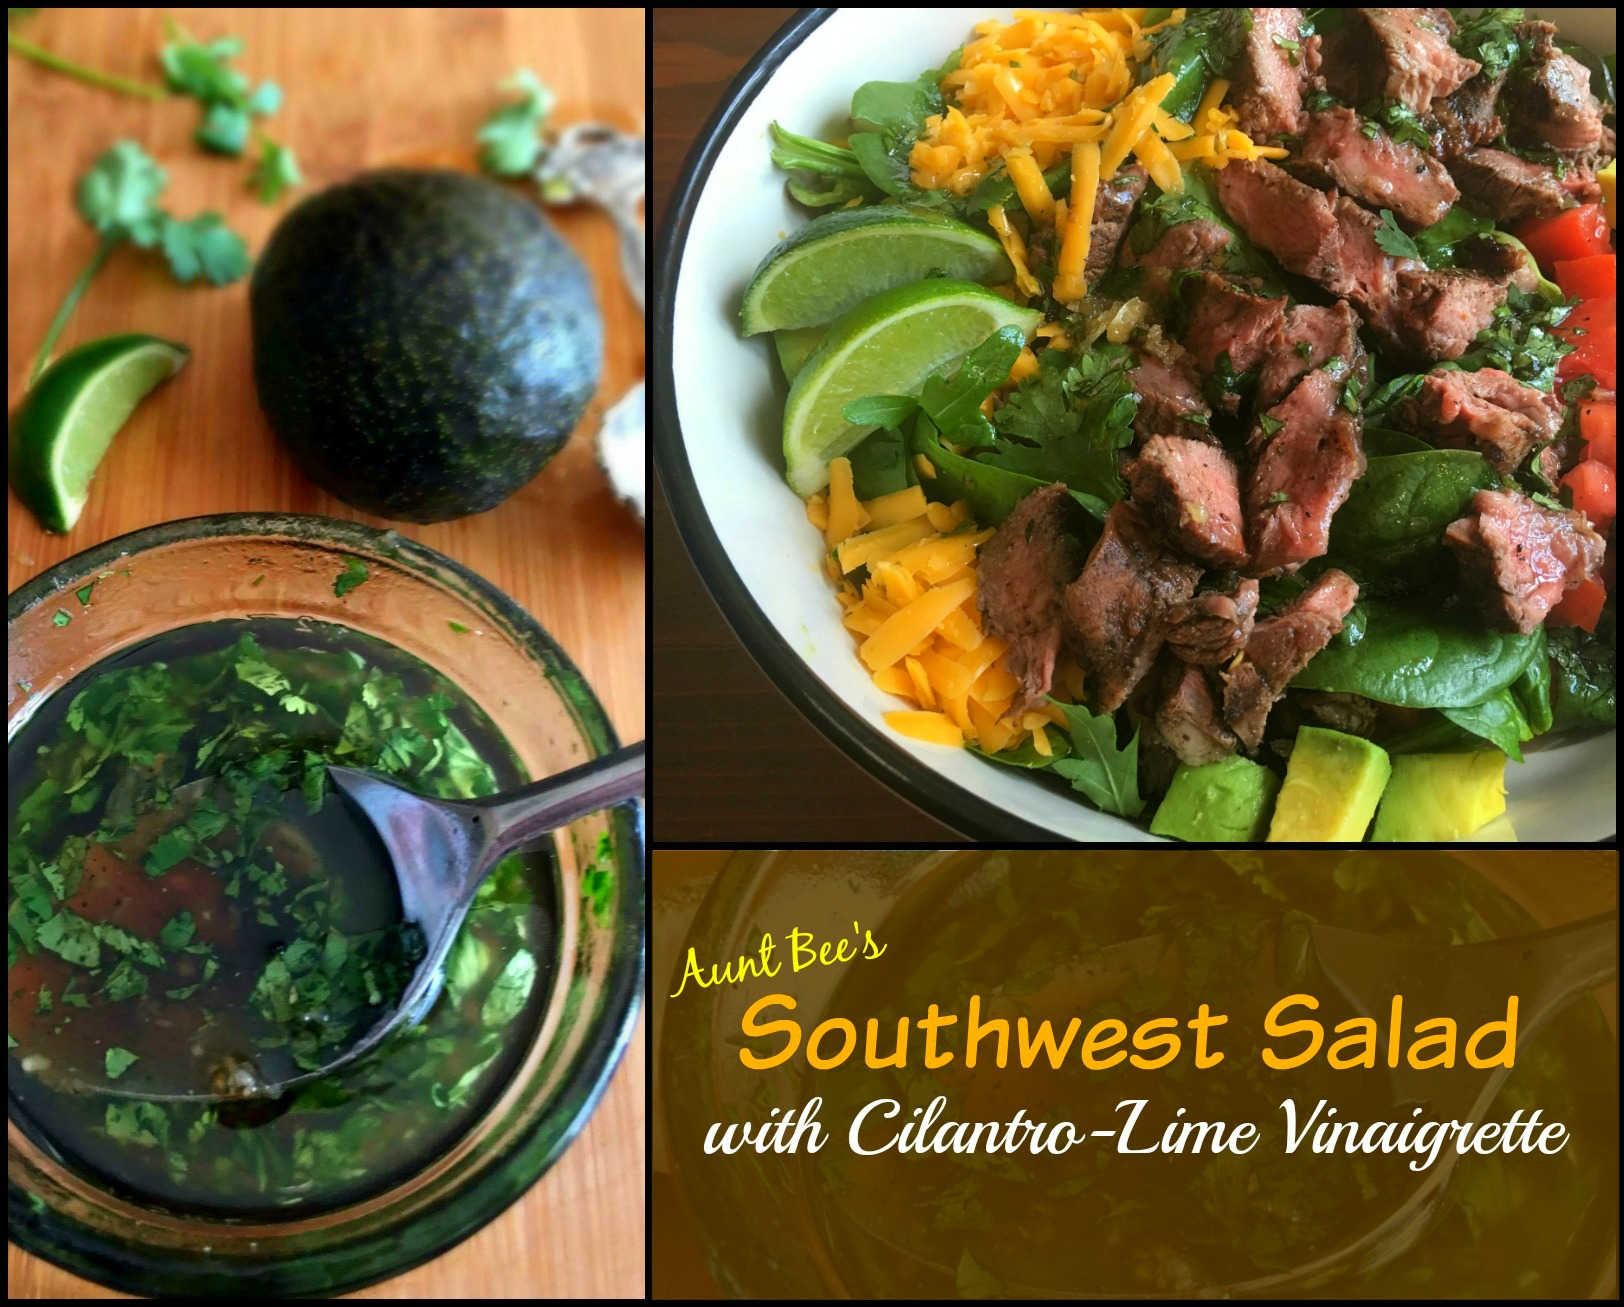 Southwest Salad with Cilantro-Lime Vinaigrette